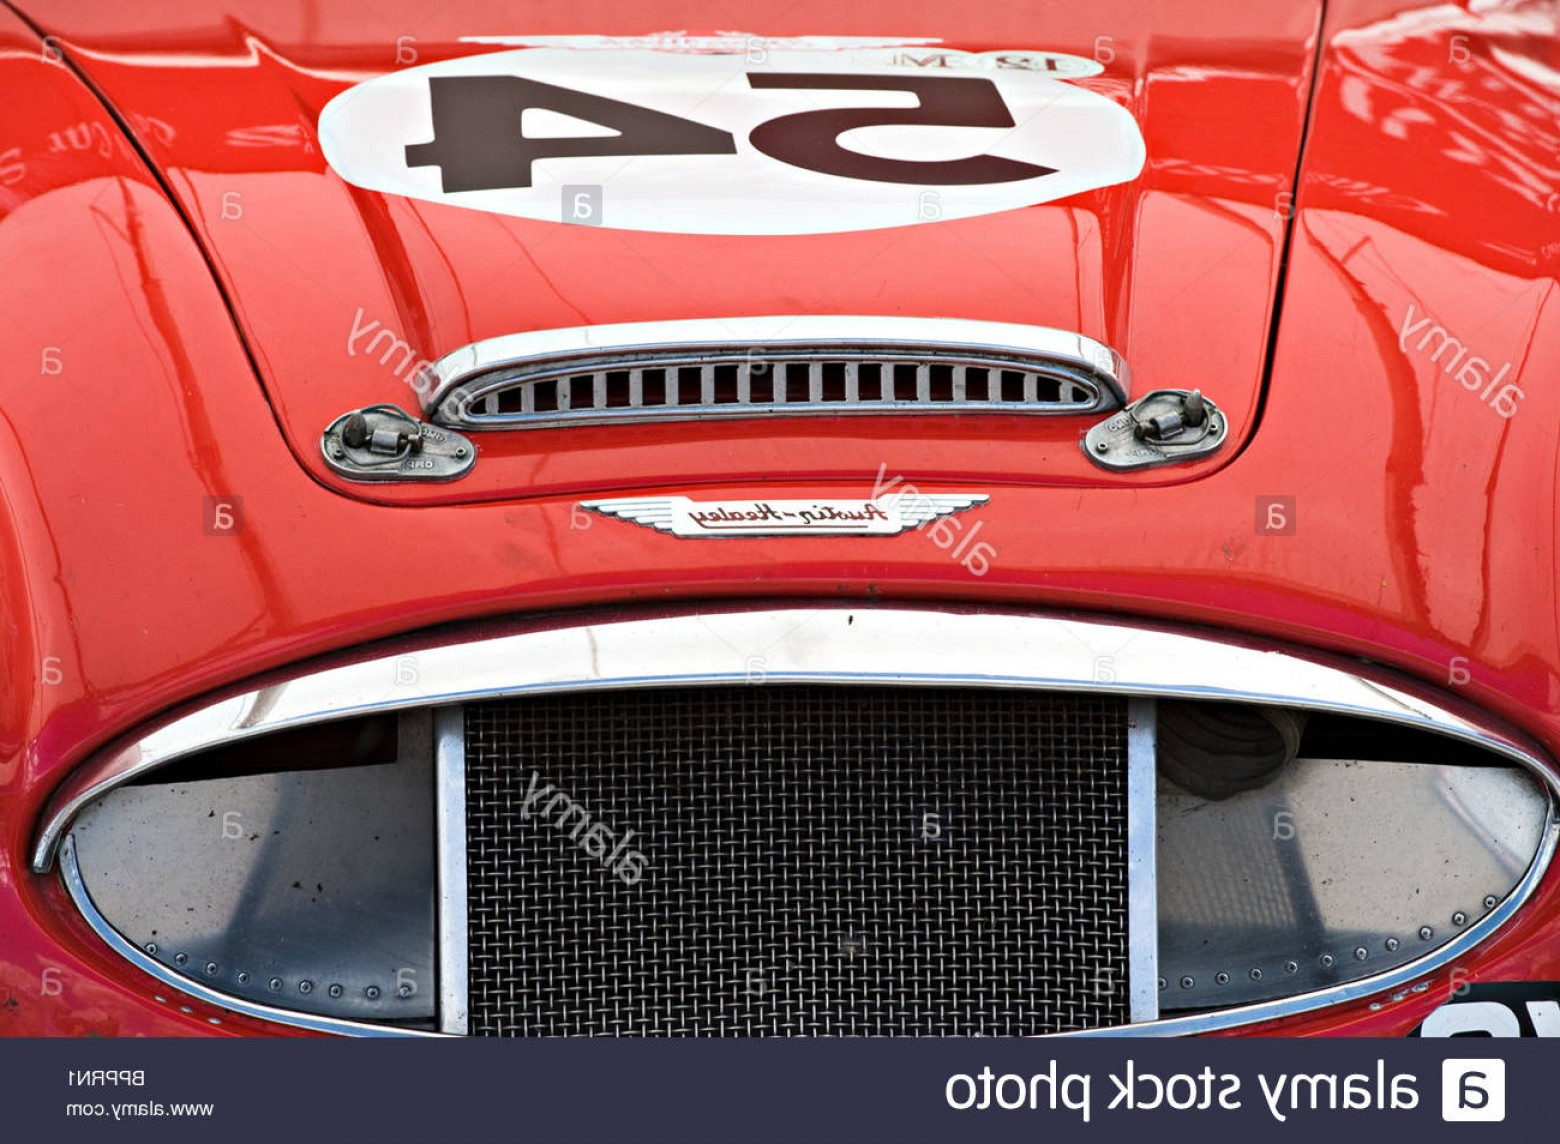 Race Car Grill Vector: Stock Photo Closeup Of Radiator Grille And Bonnet Of A Red Austin Healey